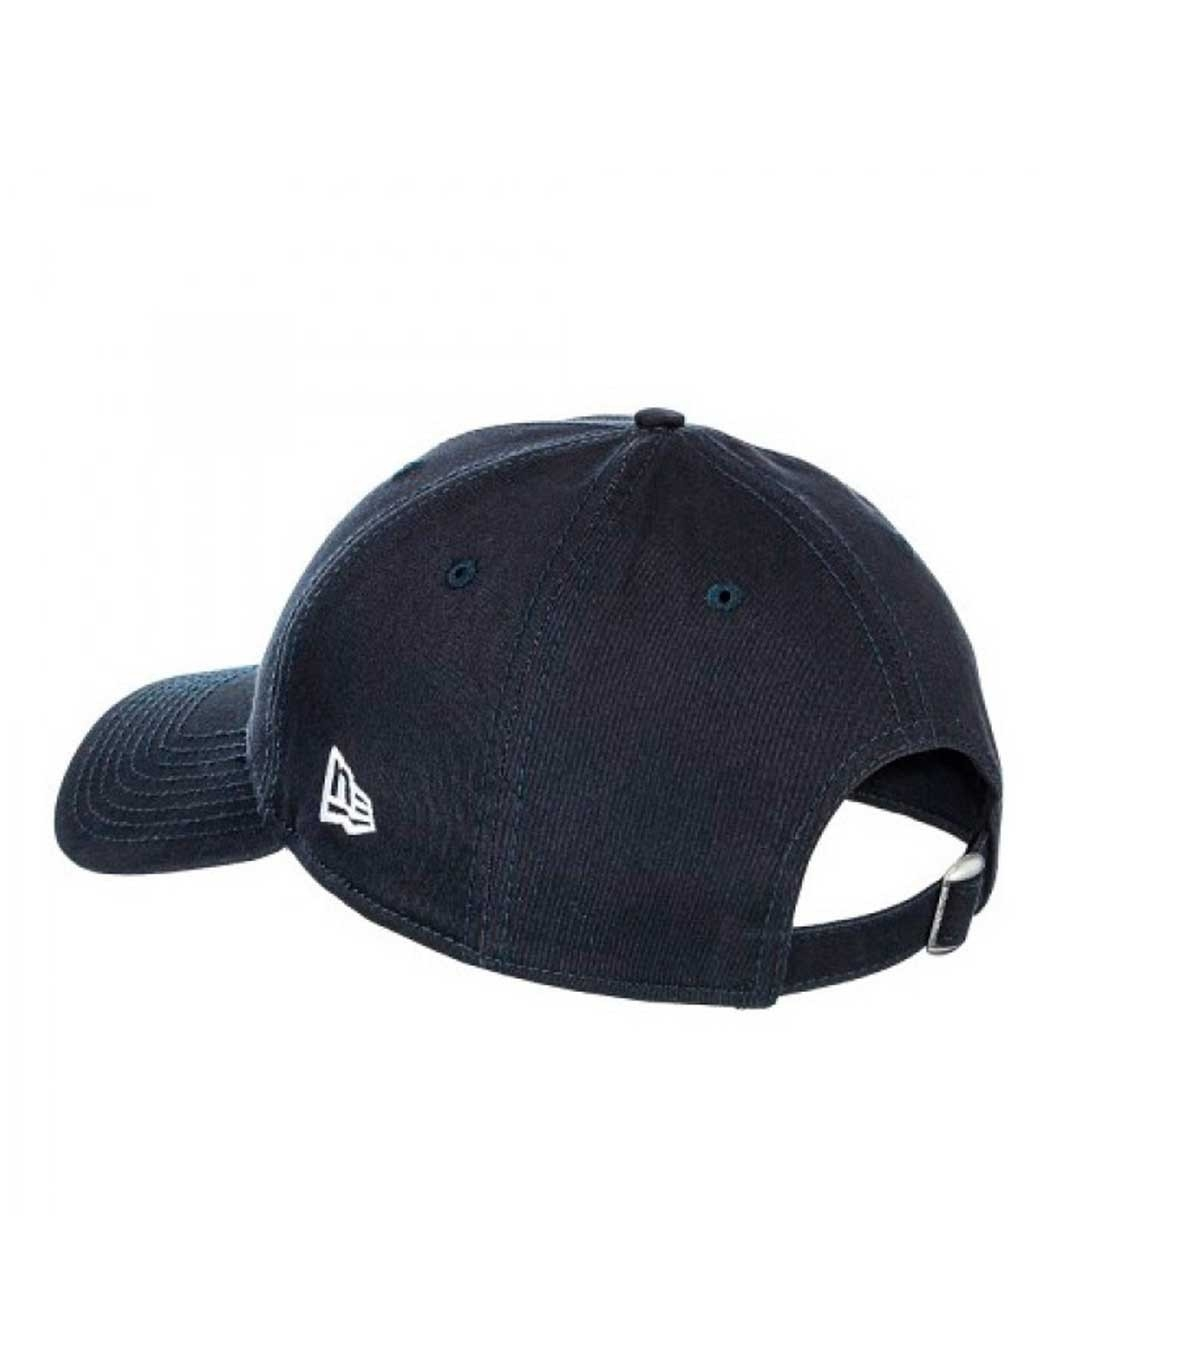 Gorra New Era New York Yankees  6af60a4aad0